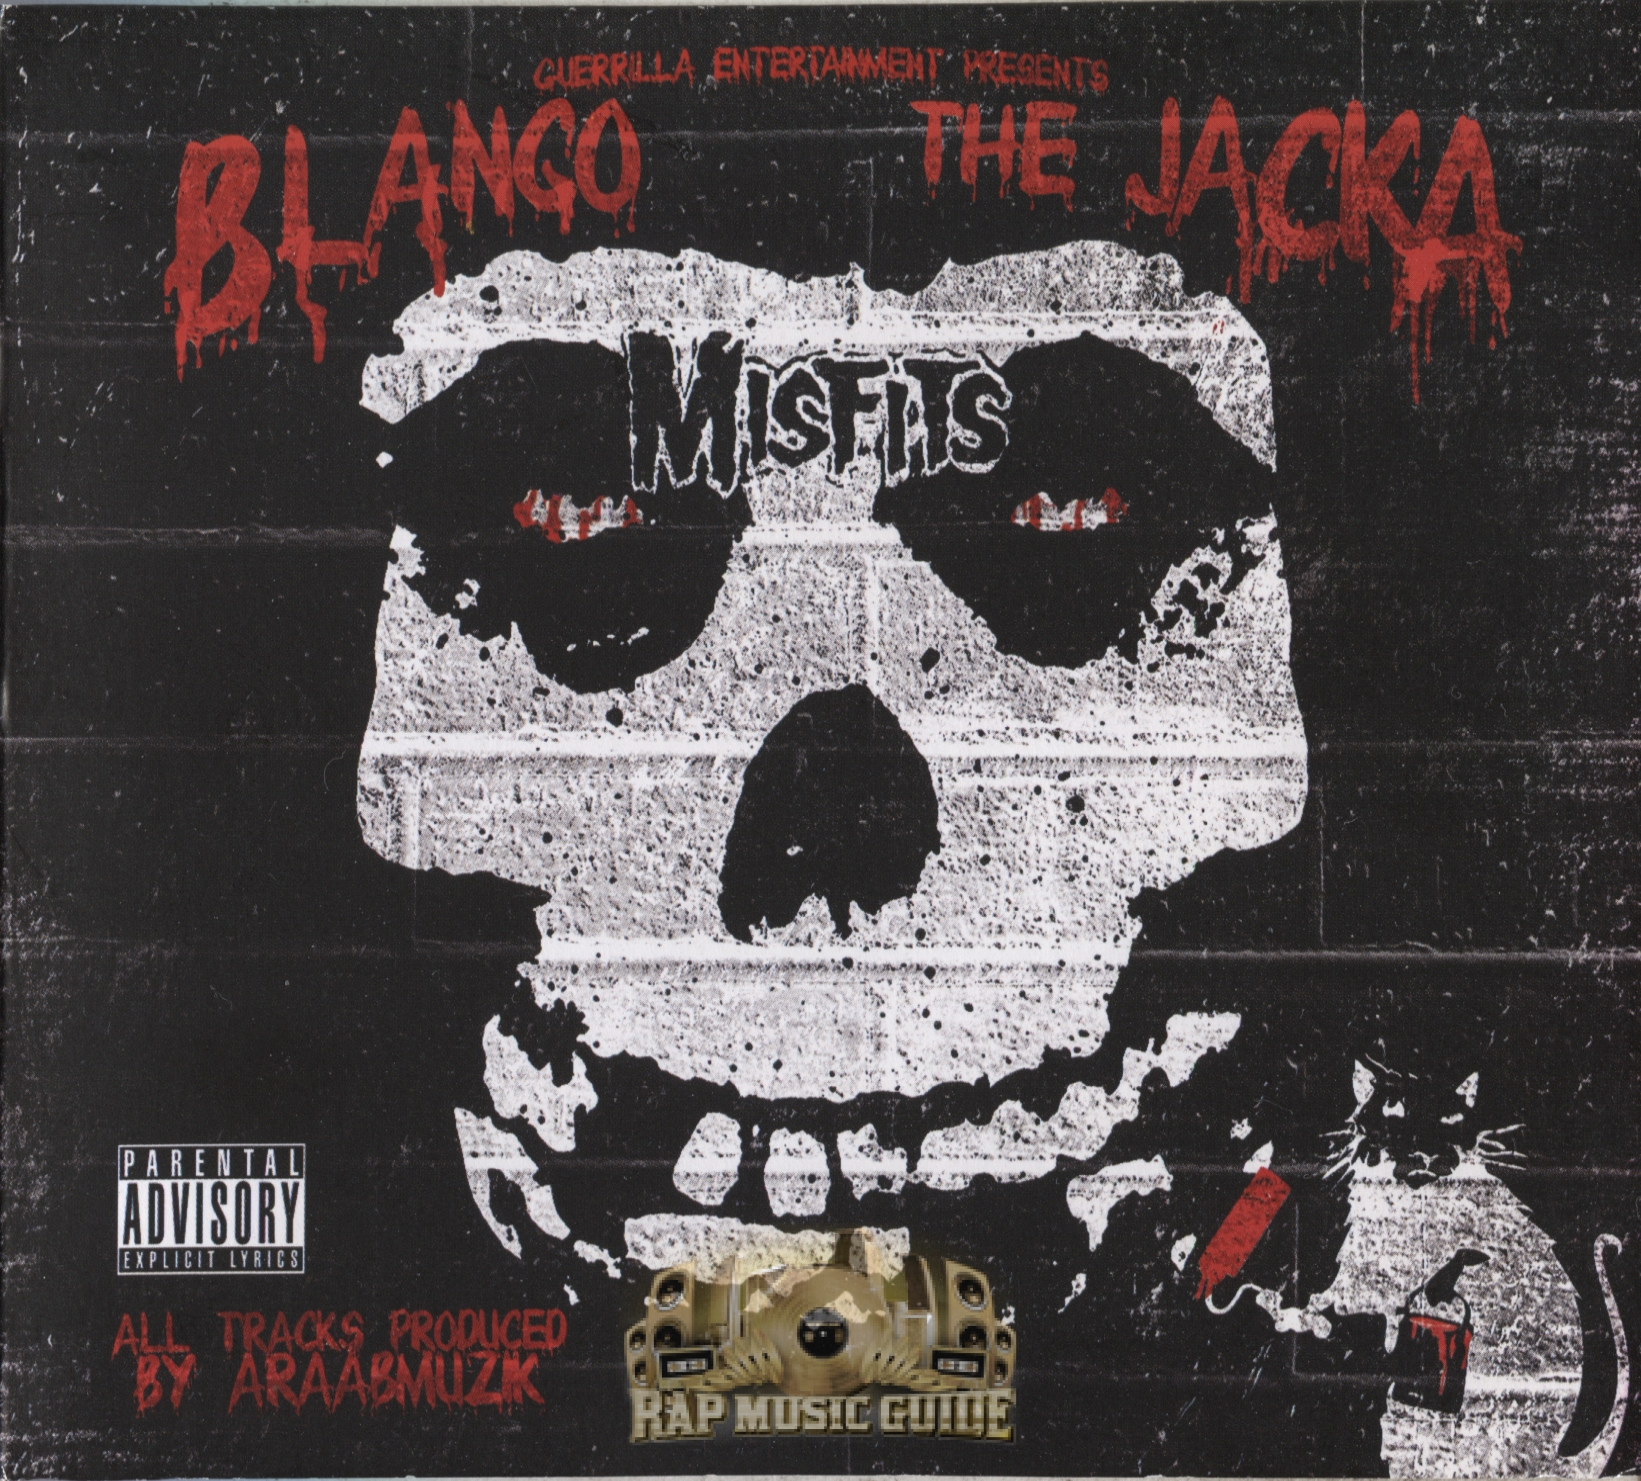 Blanco and the jacka misfits: cd | rap music guide.